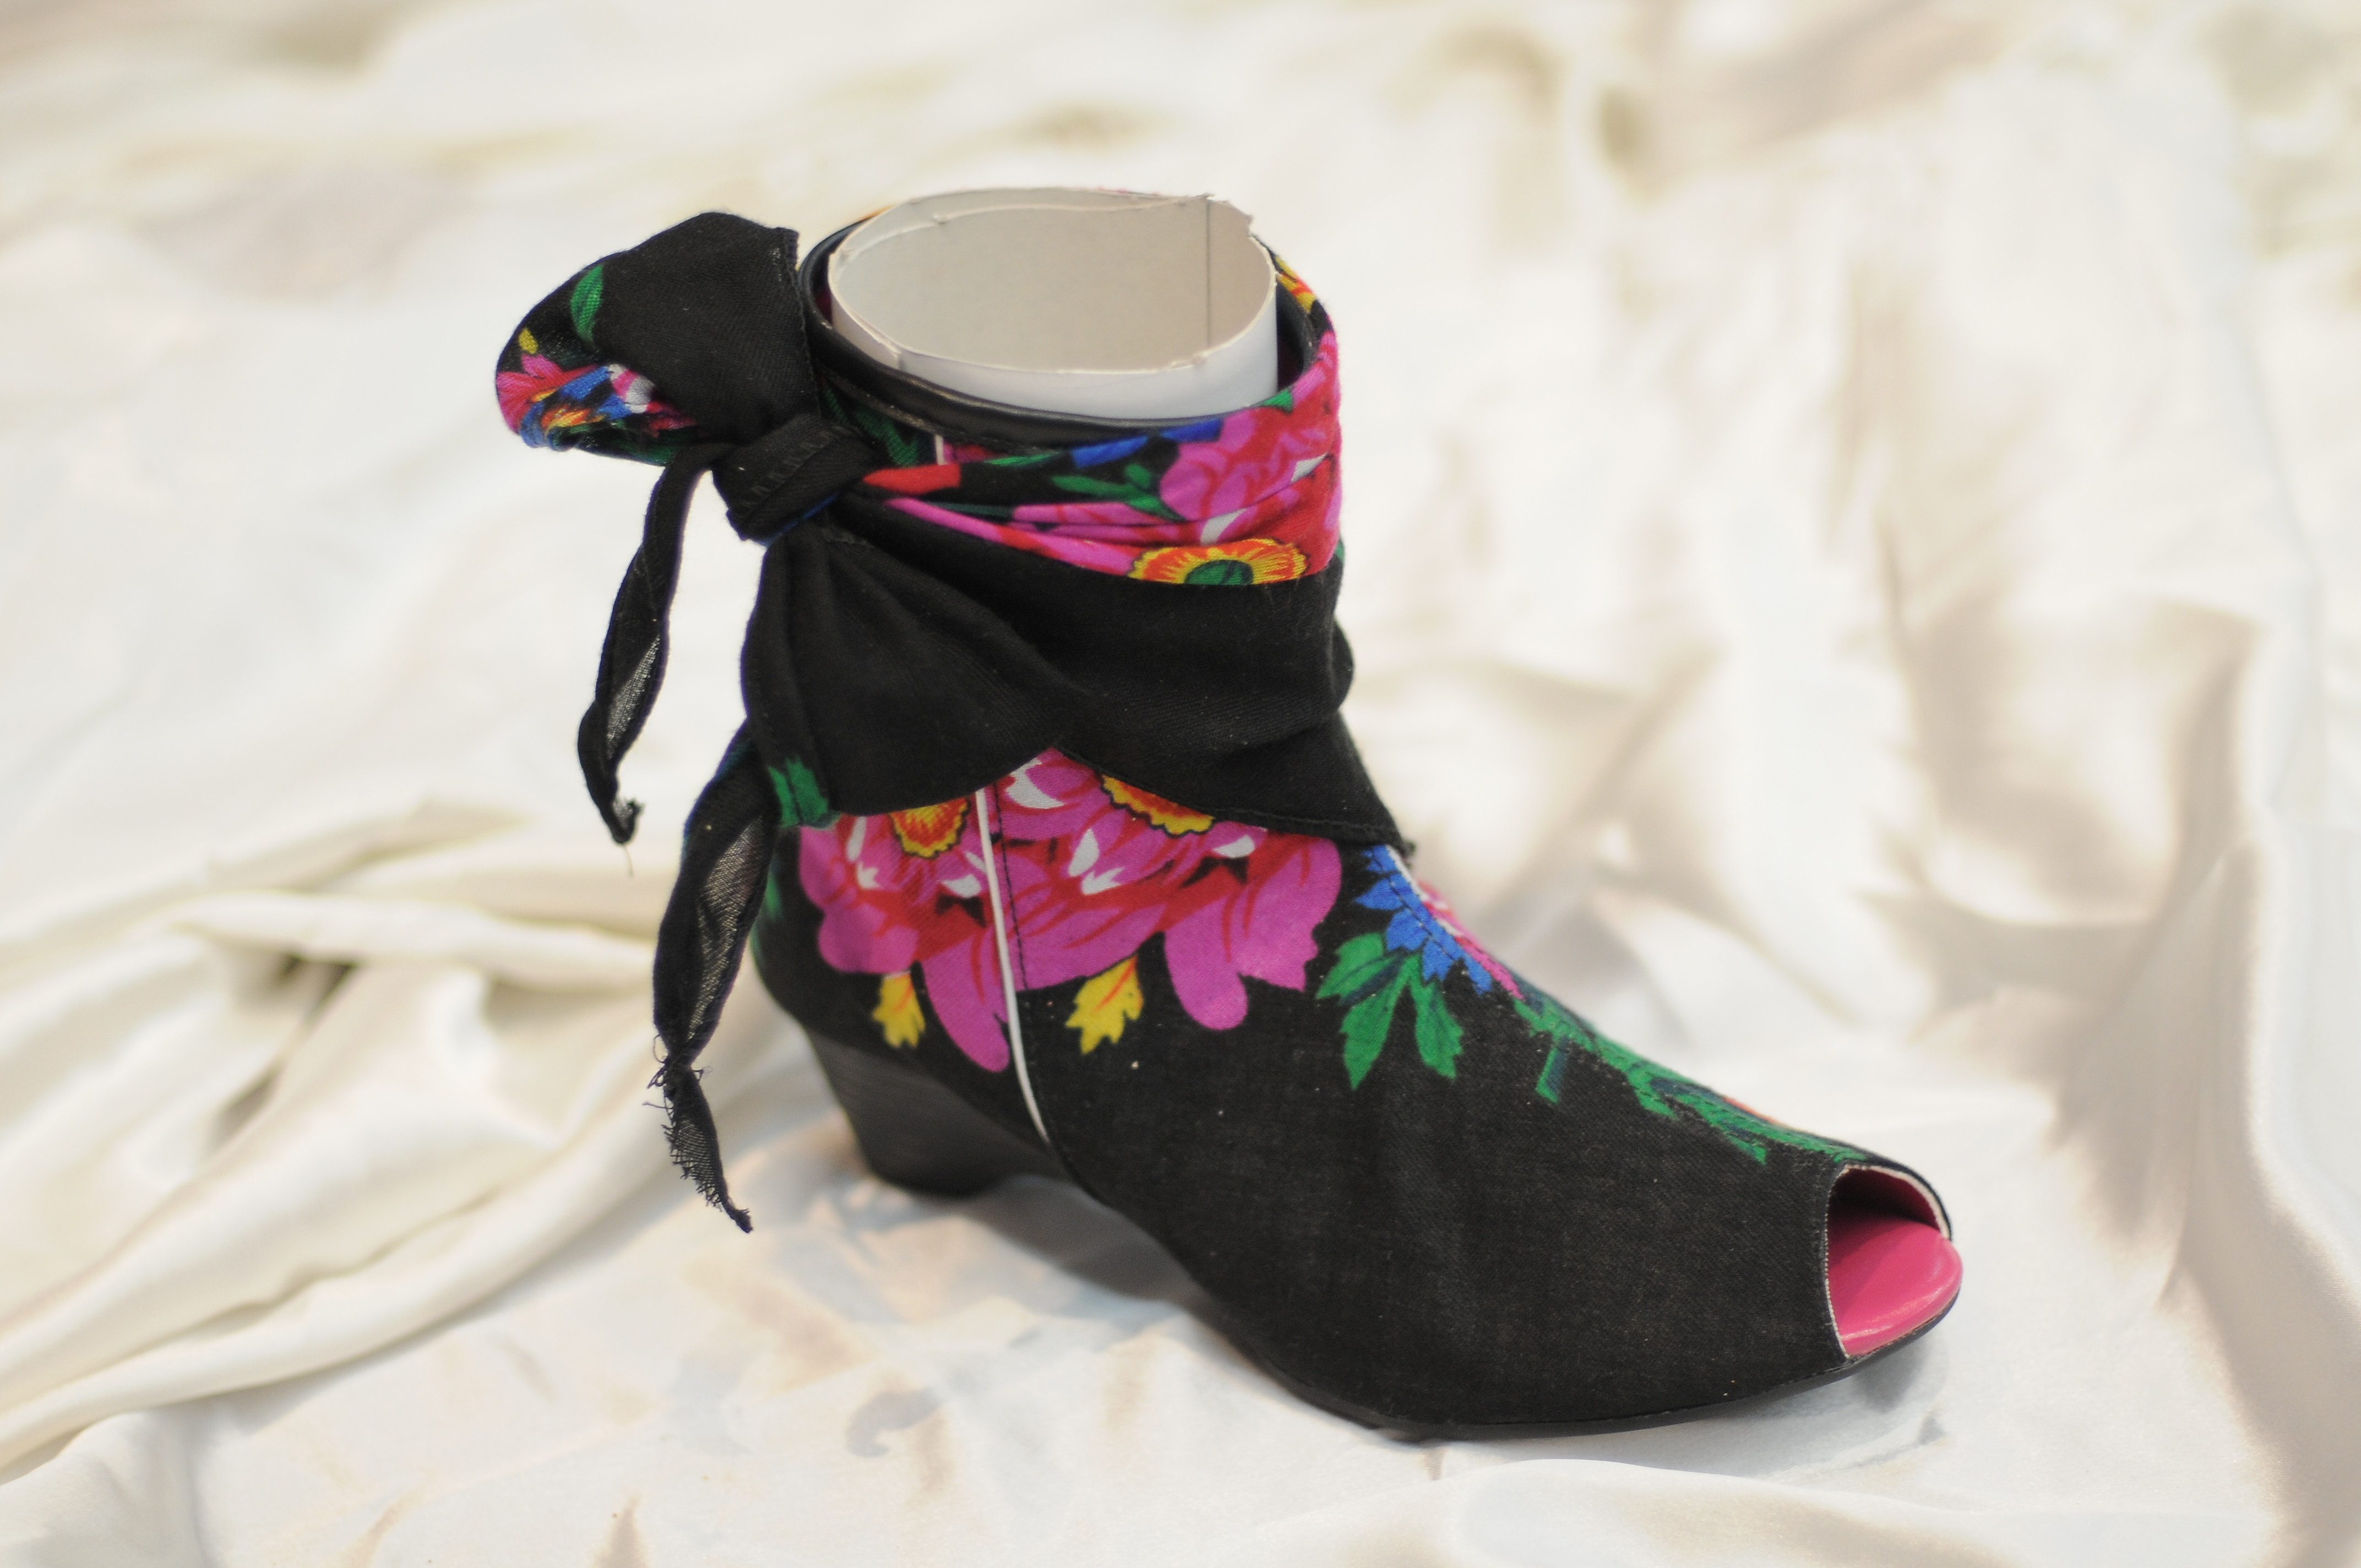 Commons Femme Traditionnelle 46 Wikimedia chaussure jpg File CordxeB